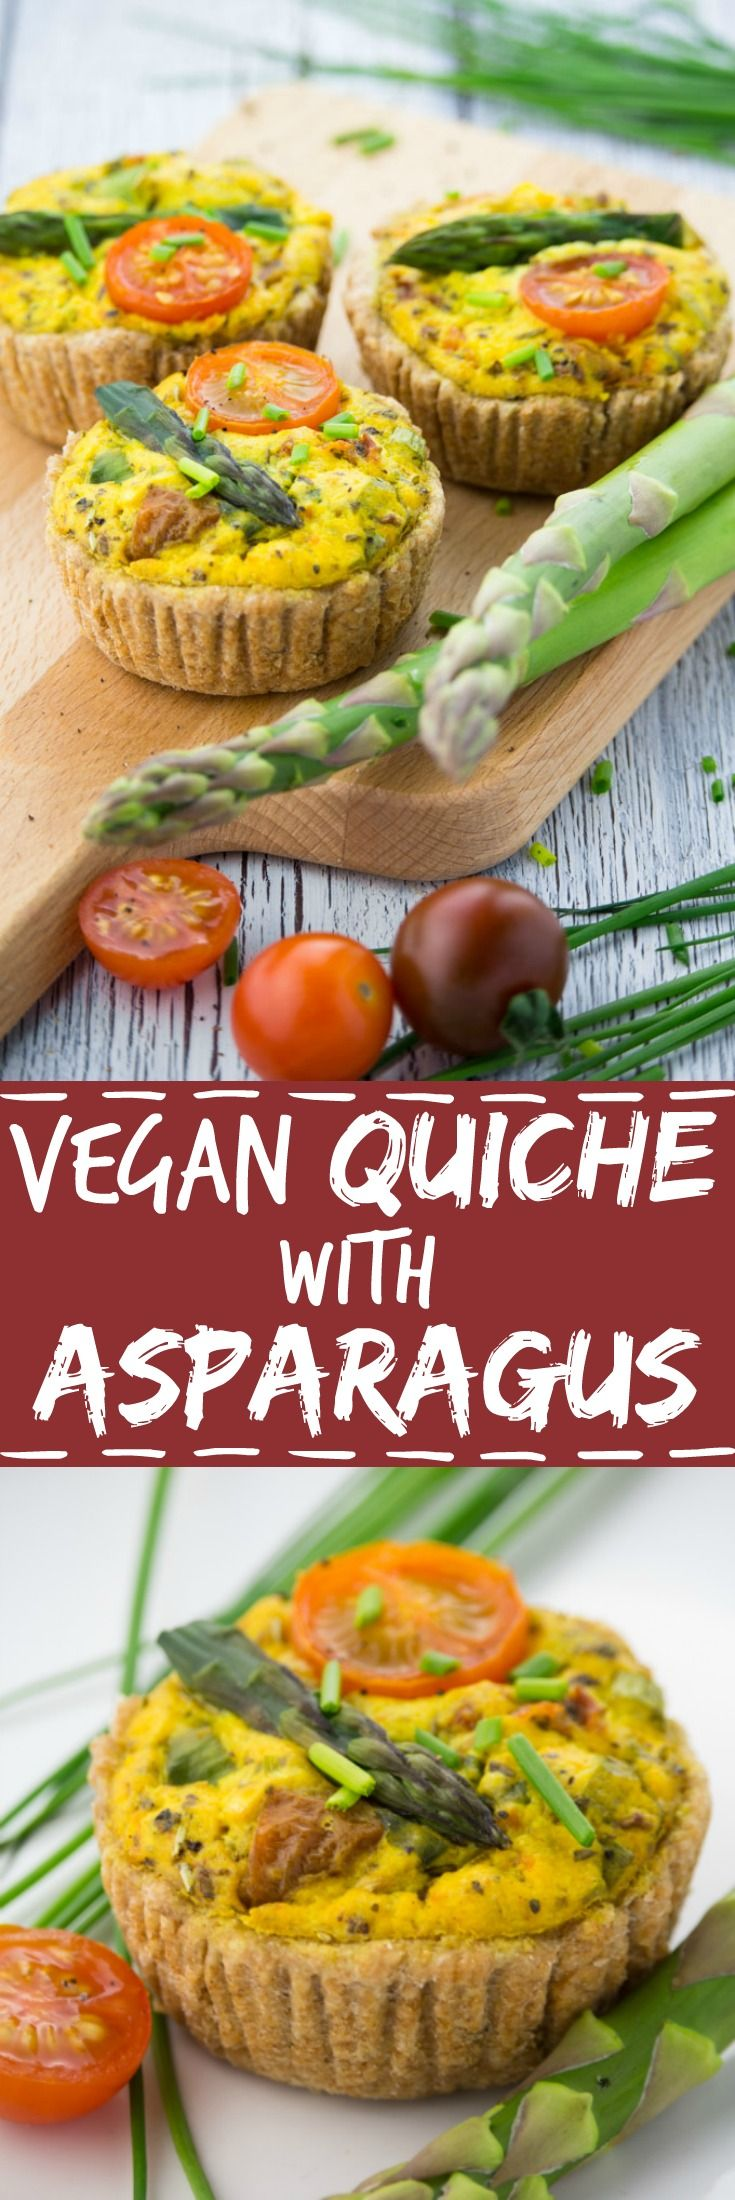 Vegan quiche with asparagus and cherry tomatoes - great with salad or as a hearty snack!